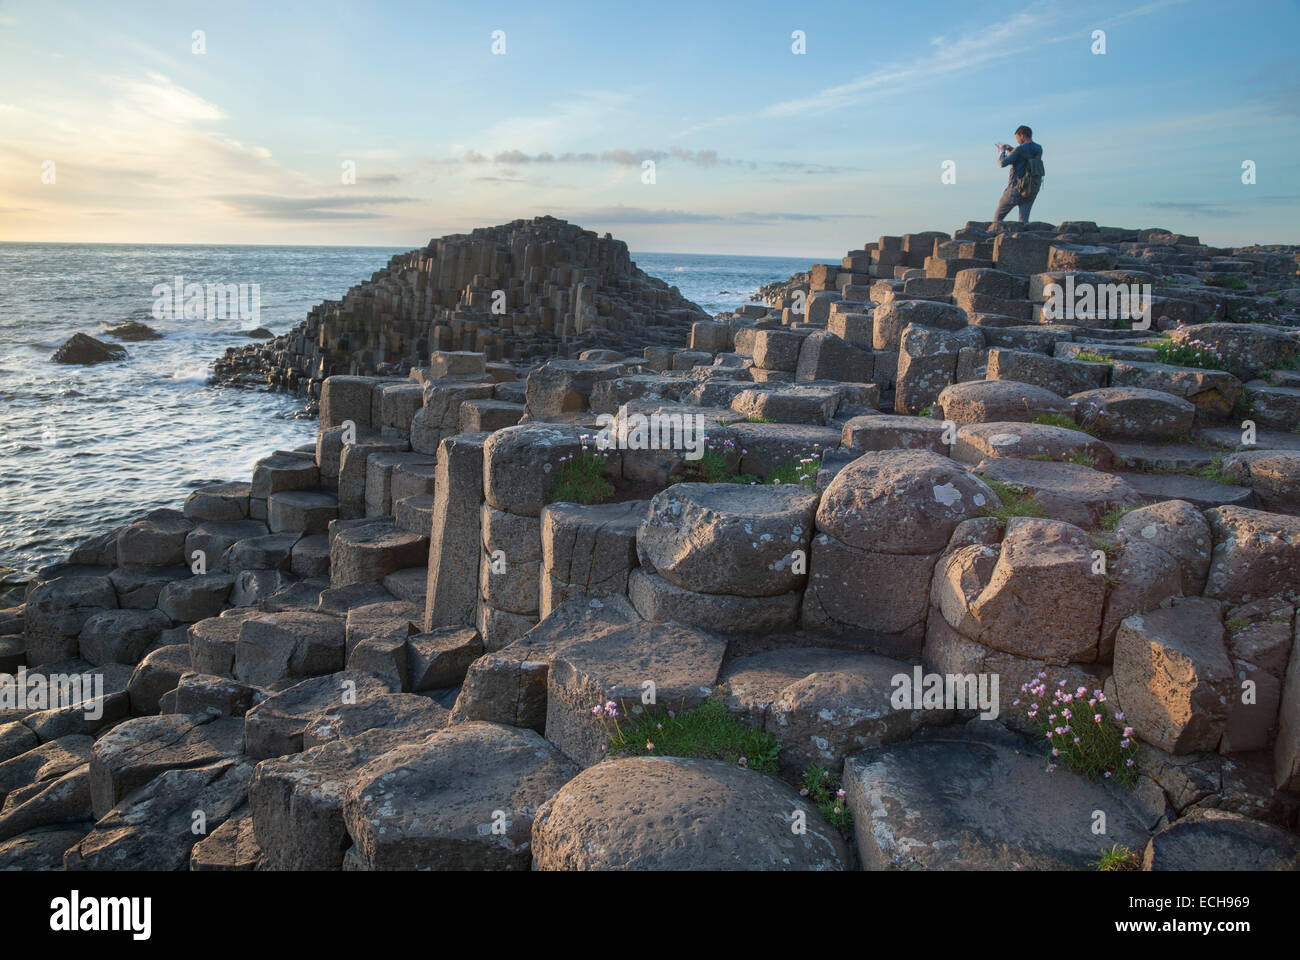 Photographer at the Giant's Causeway, Causeway Coast, County Antrim, Northern Ireland. - Stock Image